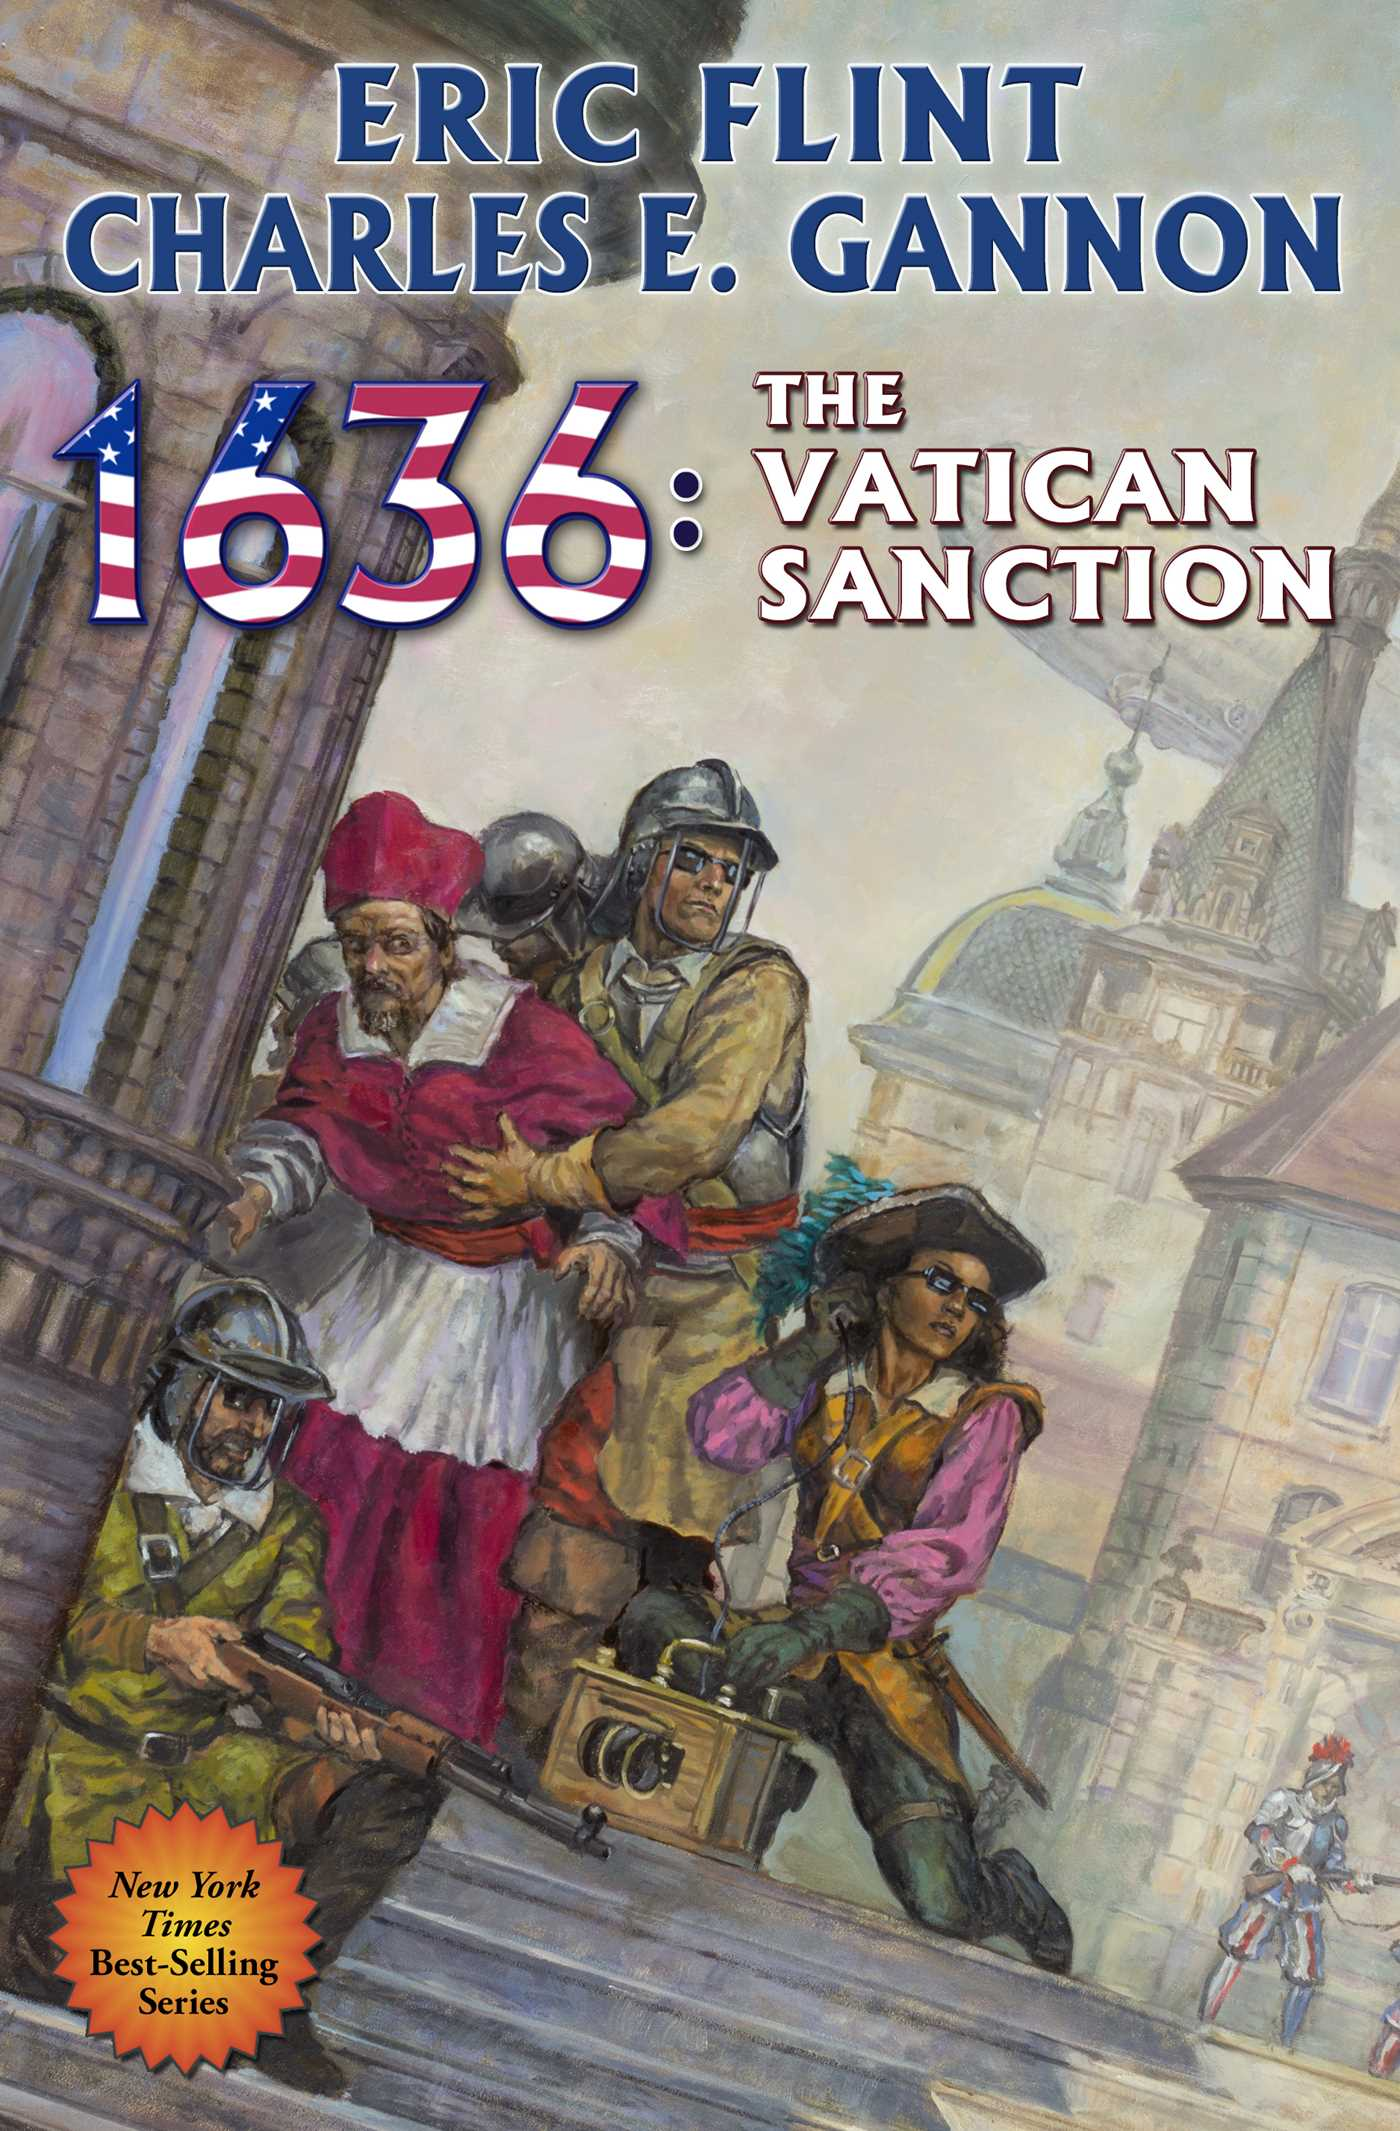 Book Cover Image (jpg): 1636: The Vatican Sanction